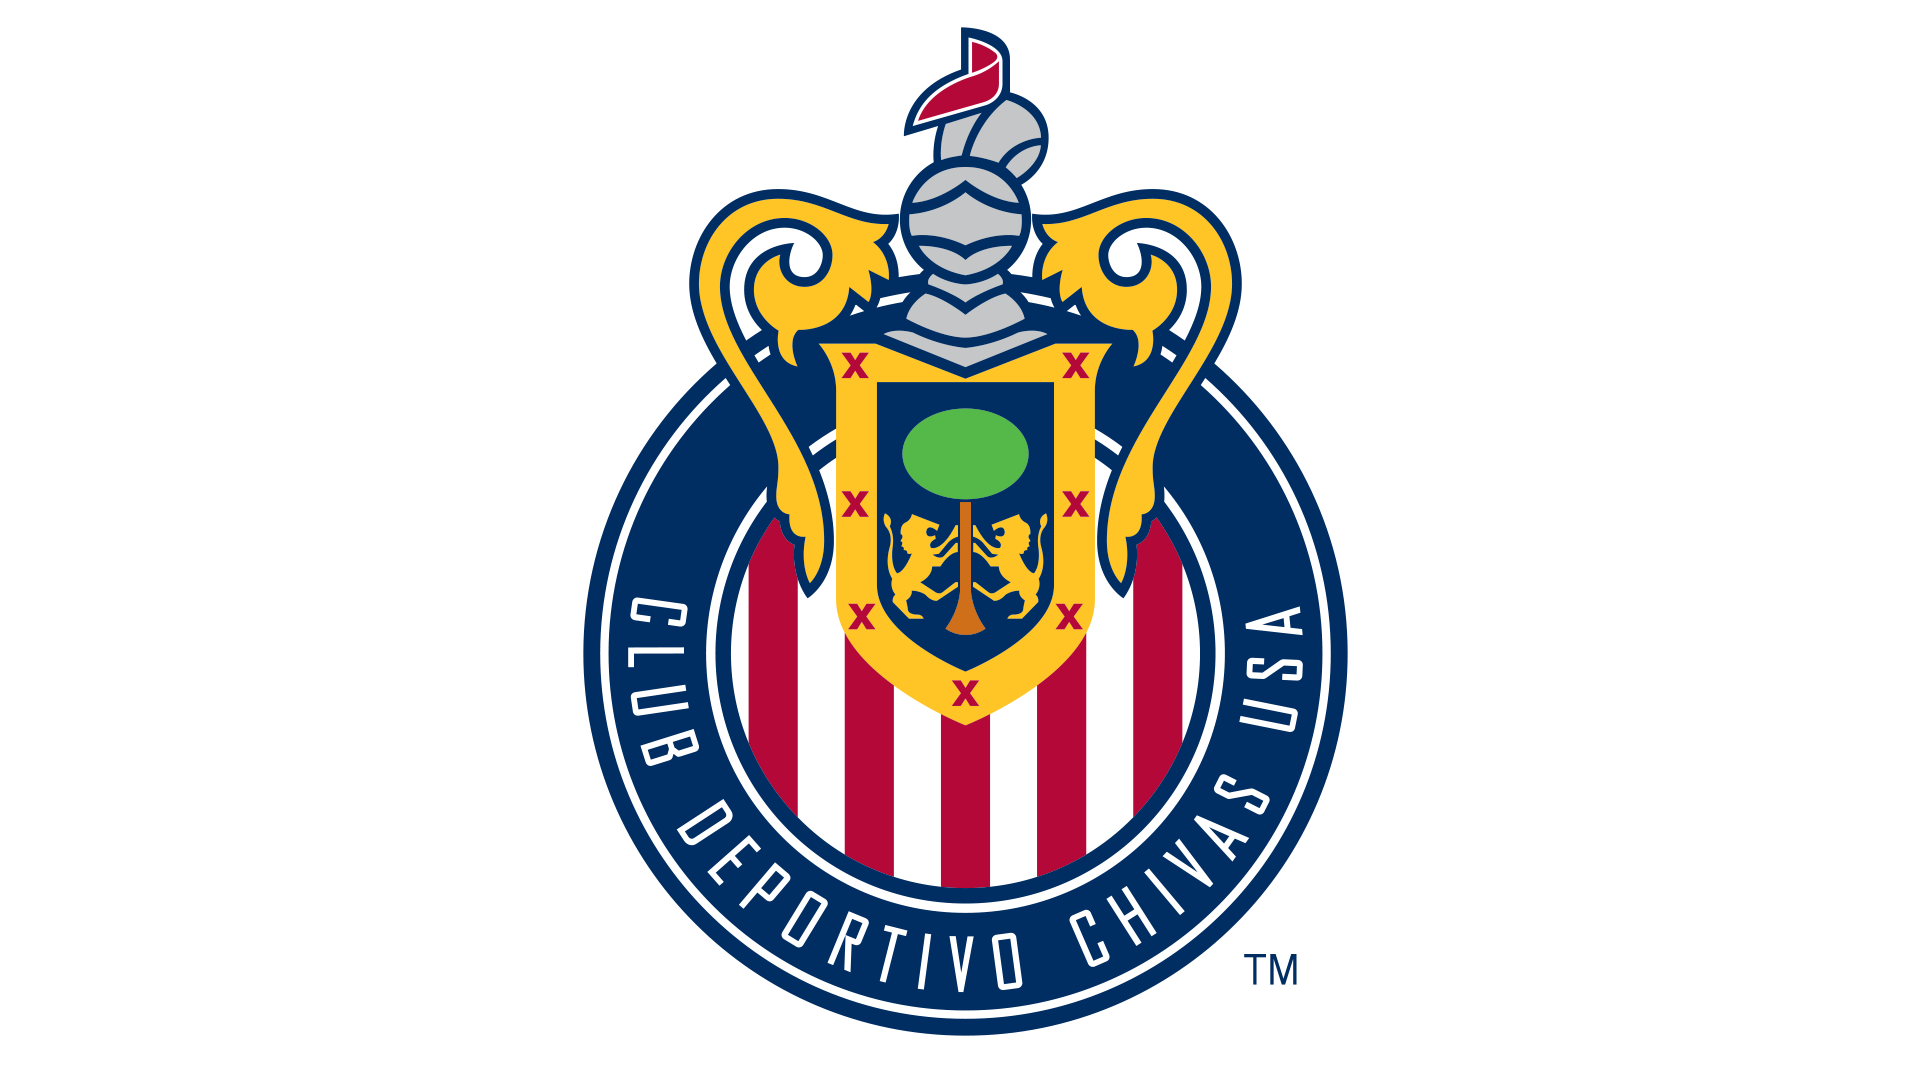 Meaning Chivas logo and symbol.